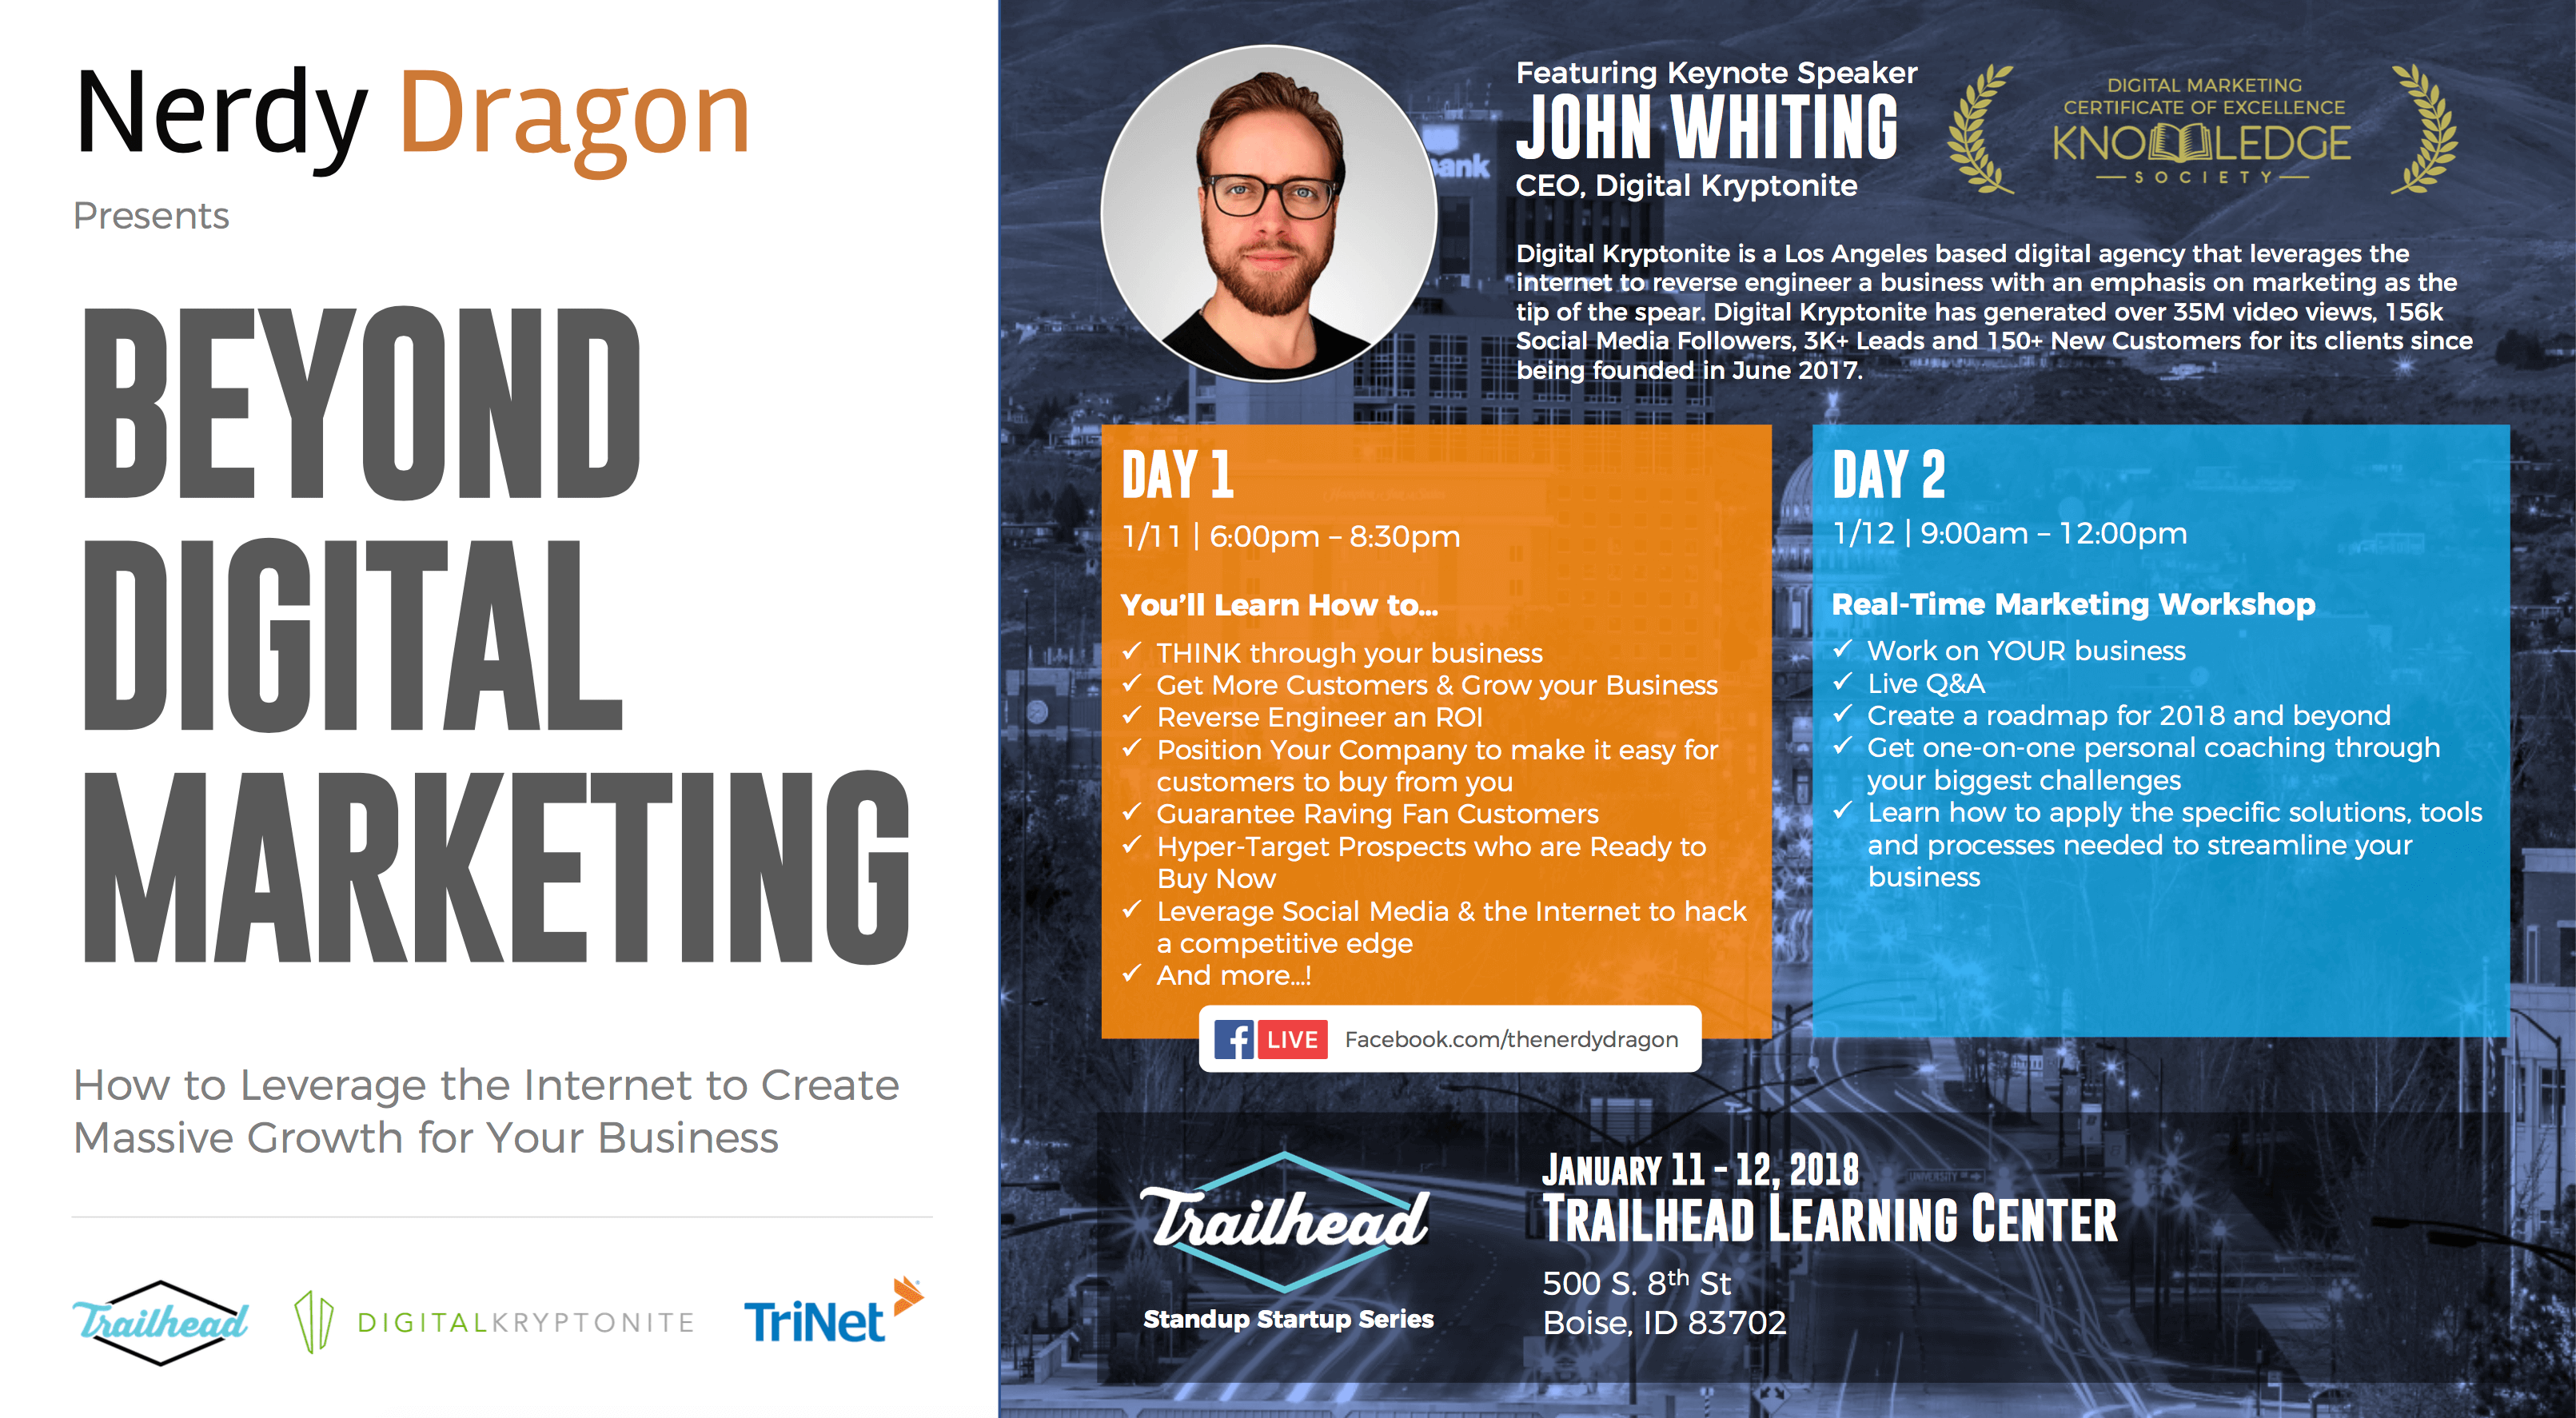 Beyond Digital Marketing - with John Whiting and Nerdy Dragon in Boise